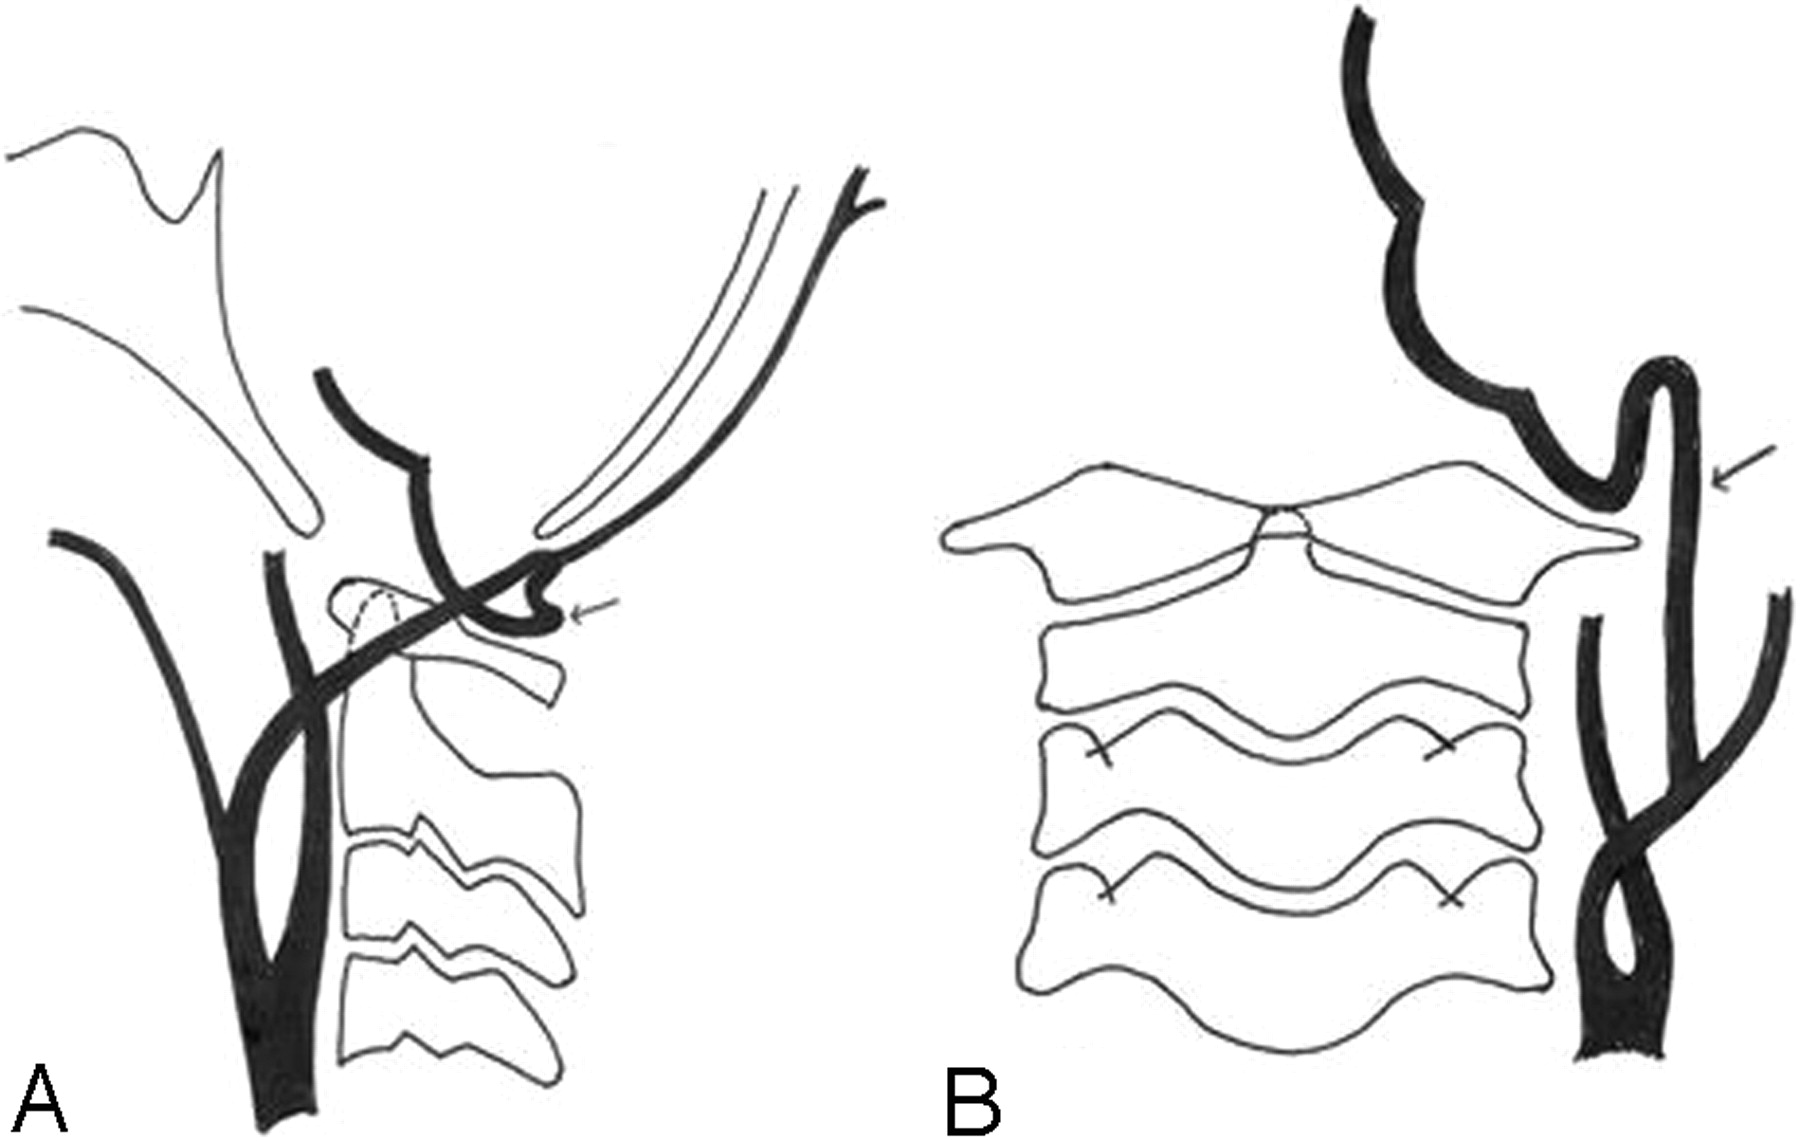 Proatlantal Intersegmental Arteries Of External Carotid Artery